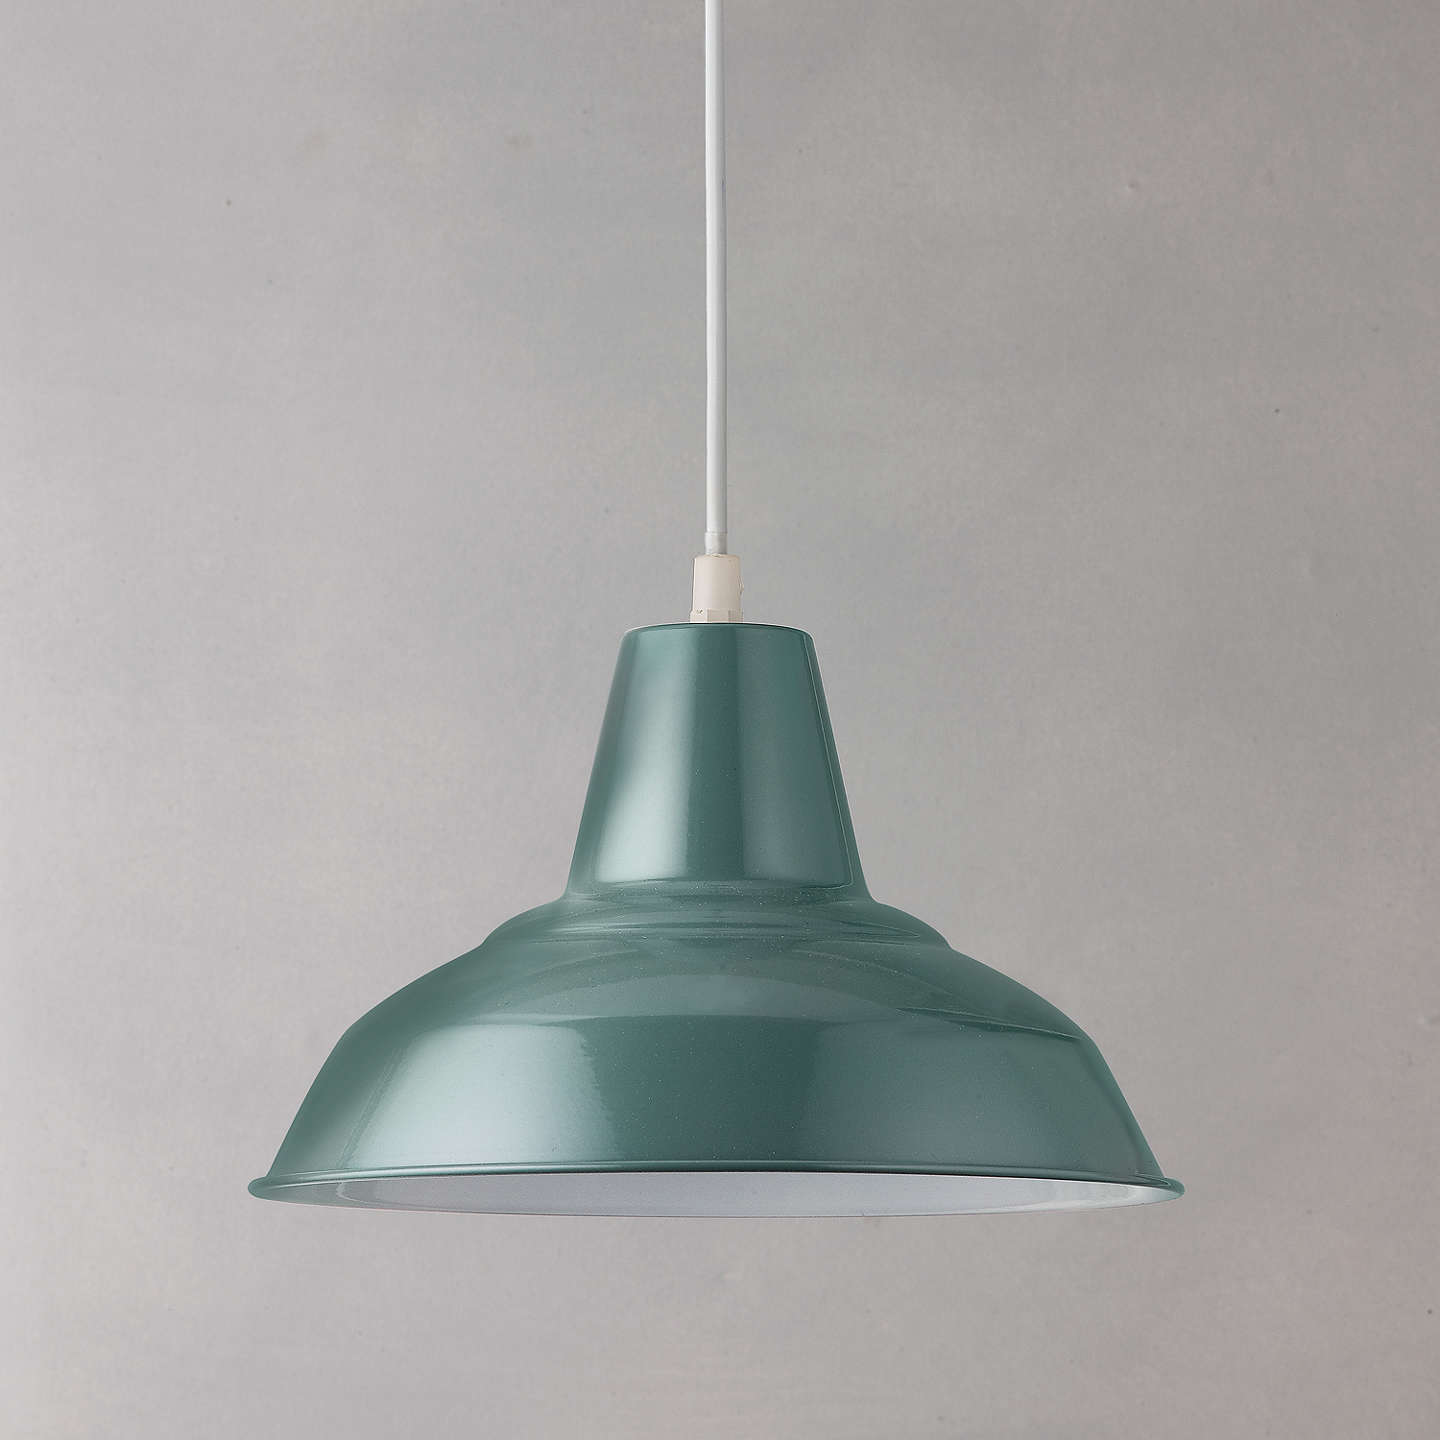 John lewis penelope ceiling light slate at john lewis buyjohn lewis penelope ceiling light slate online at johnlewis aloadofball Image collections